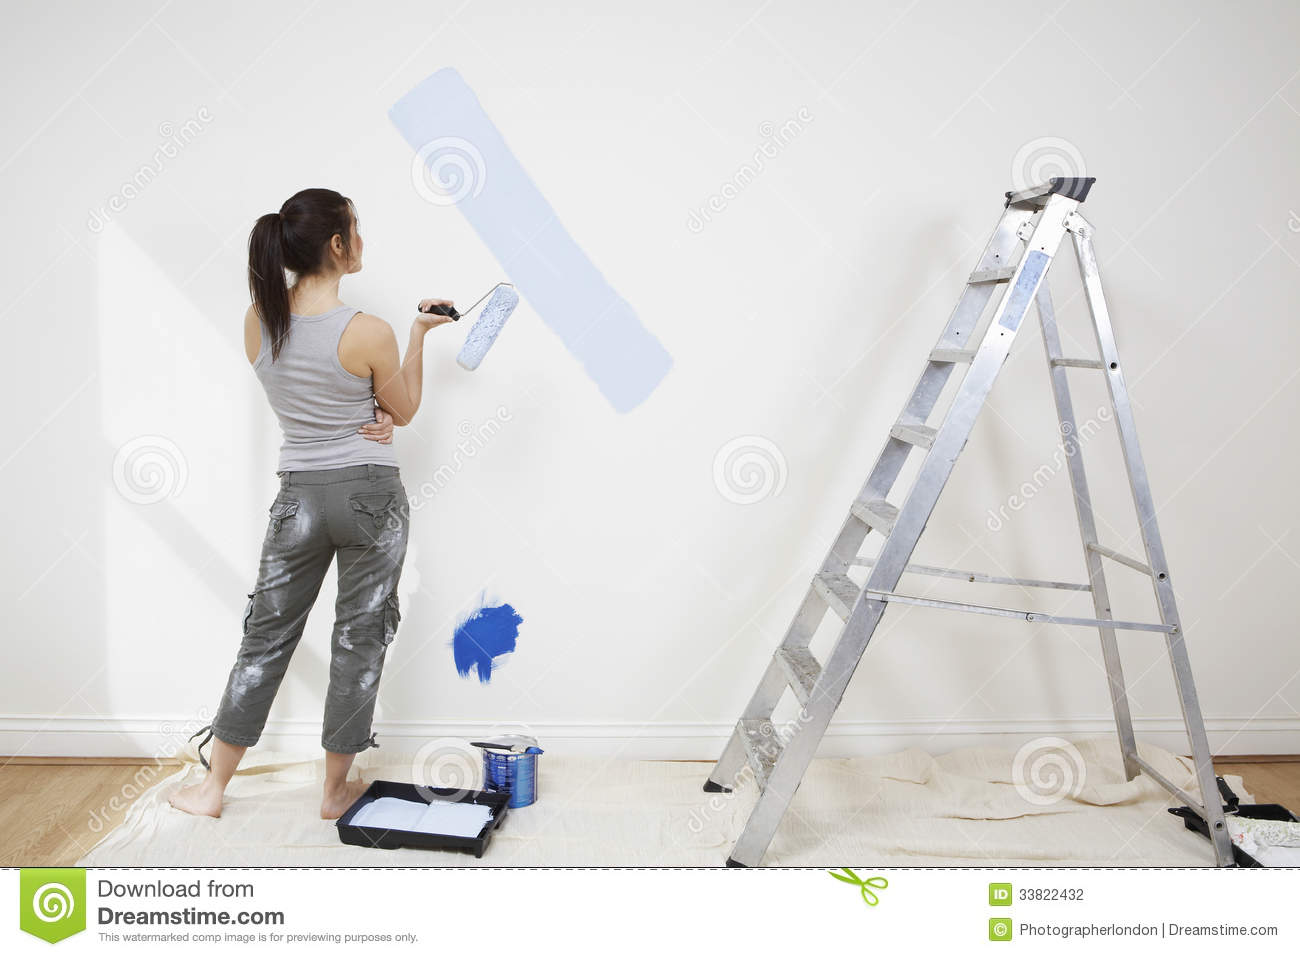 woman paint on wall royalty free stock photo - image: 15915935